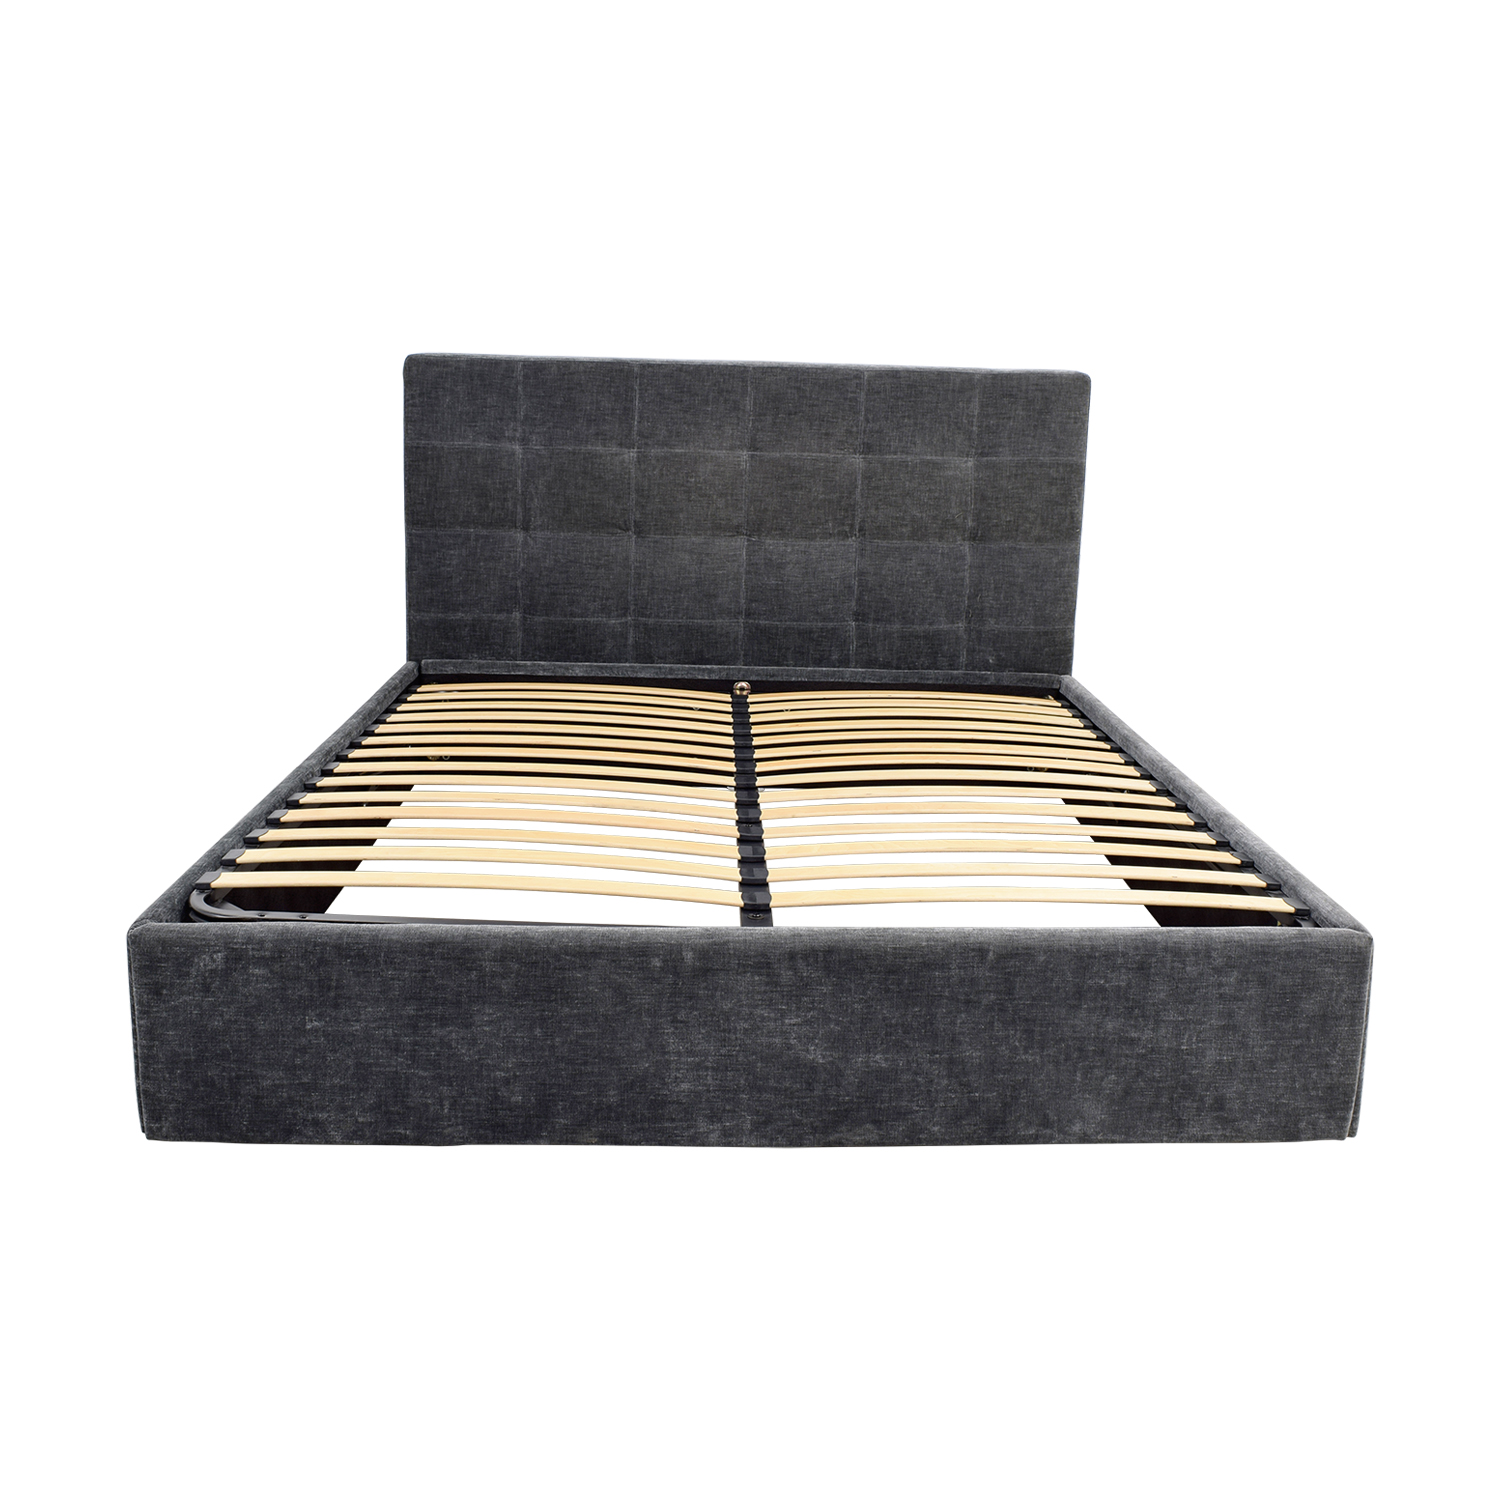 BoConcept BoConcept Grey Tufted Velvet Corduroy King Bed Frame with Storage dimensions